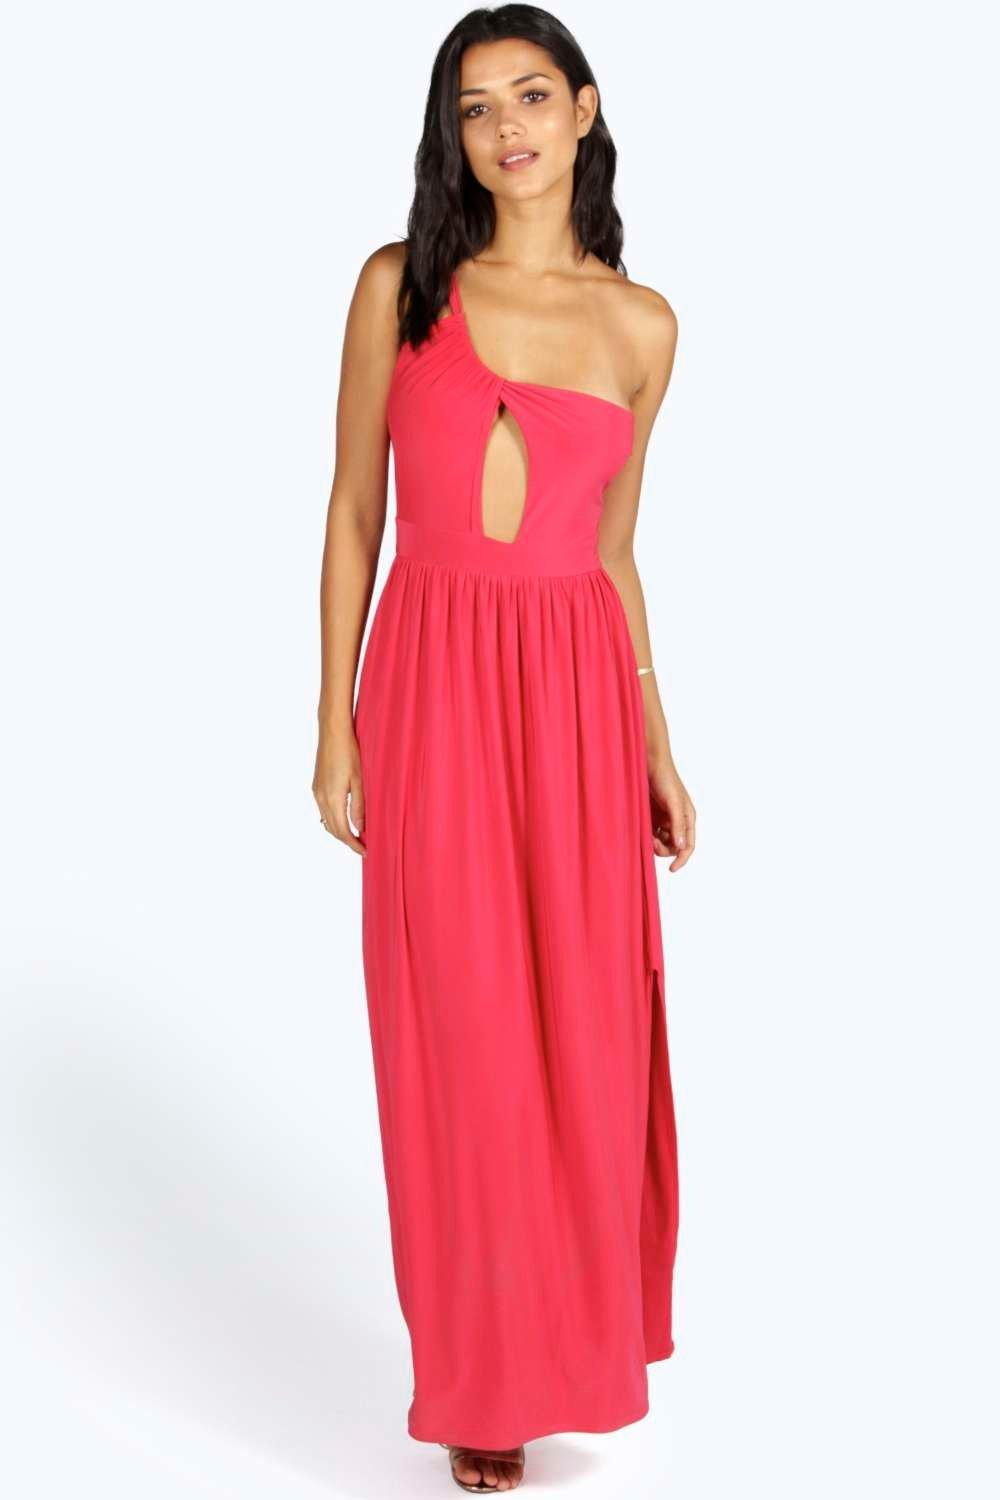 Lucia One Shoulder Drape Front Maxi - coral